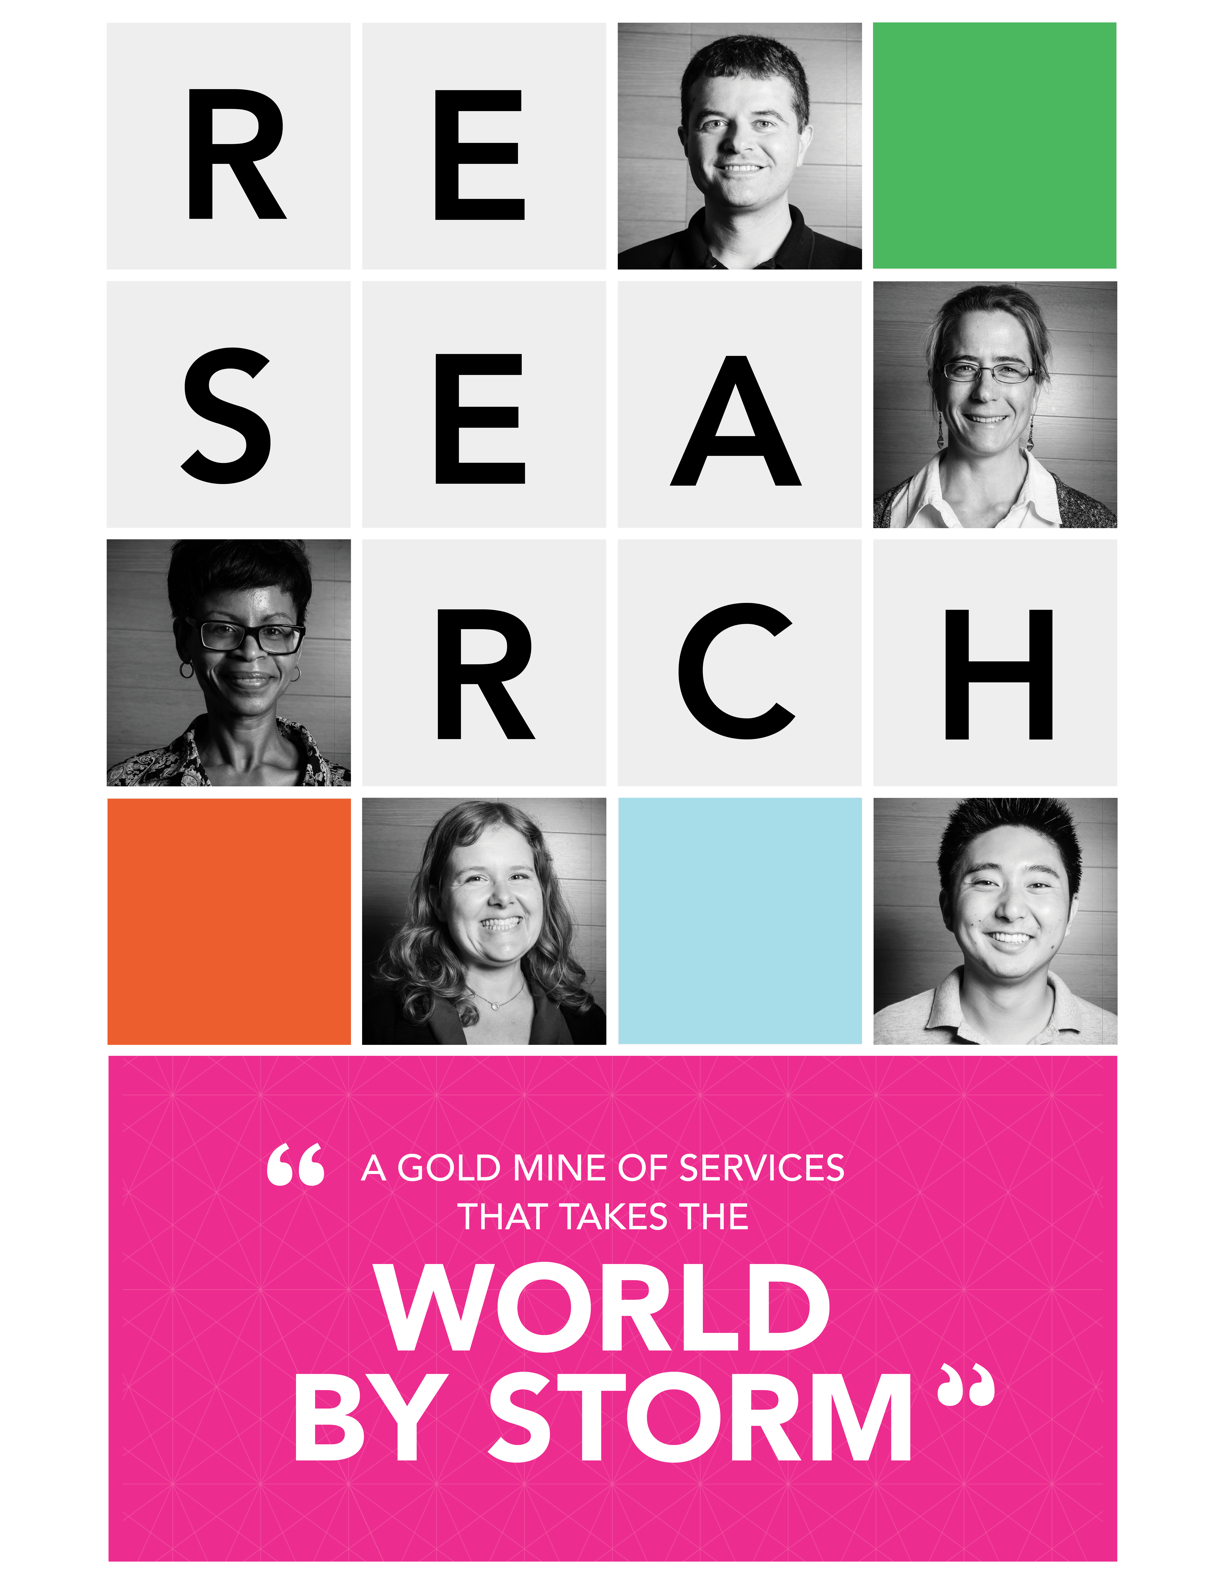 Research_Poster-4-.png